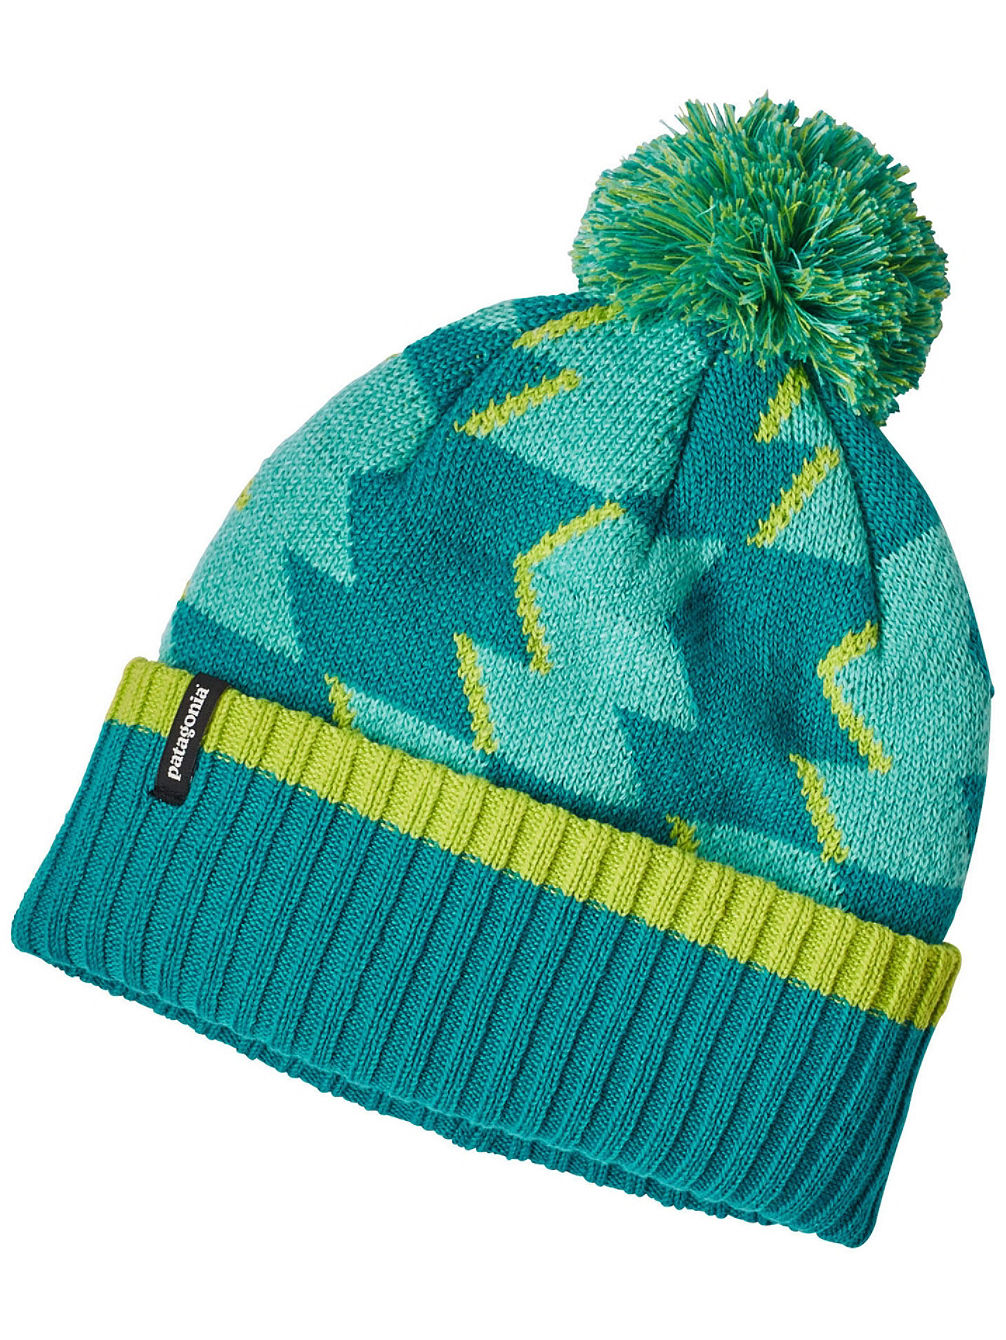 Buy Patagonia Powder Town Beanie Youth online at blue-tomato.com e3d8efd40